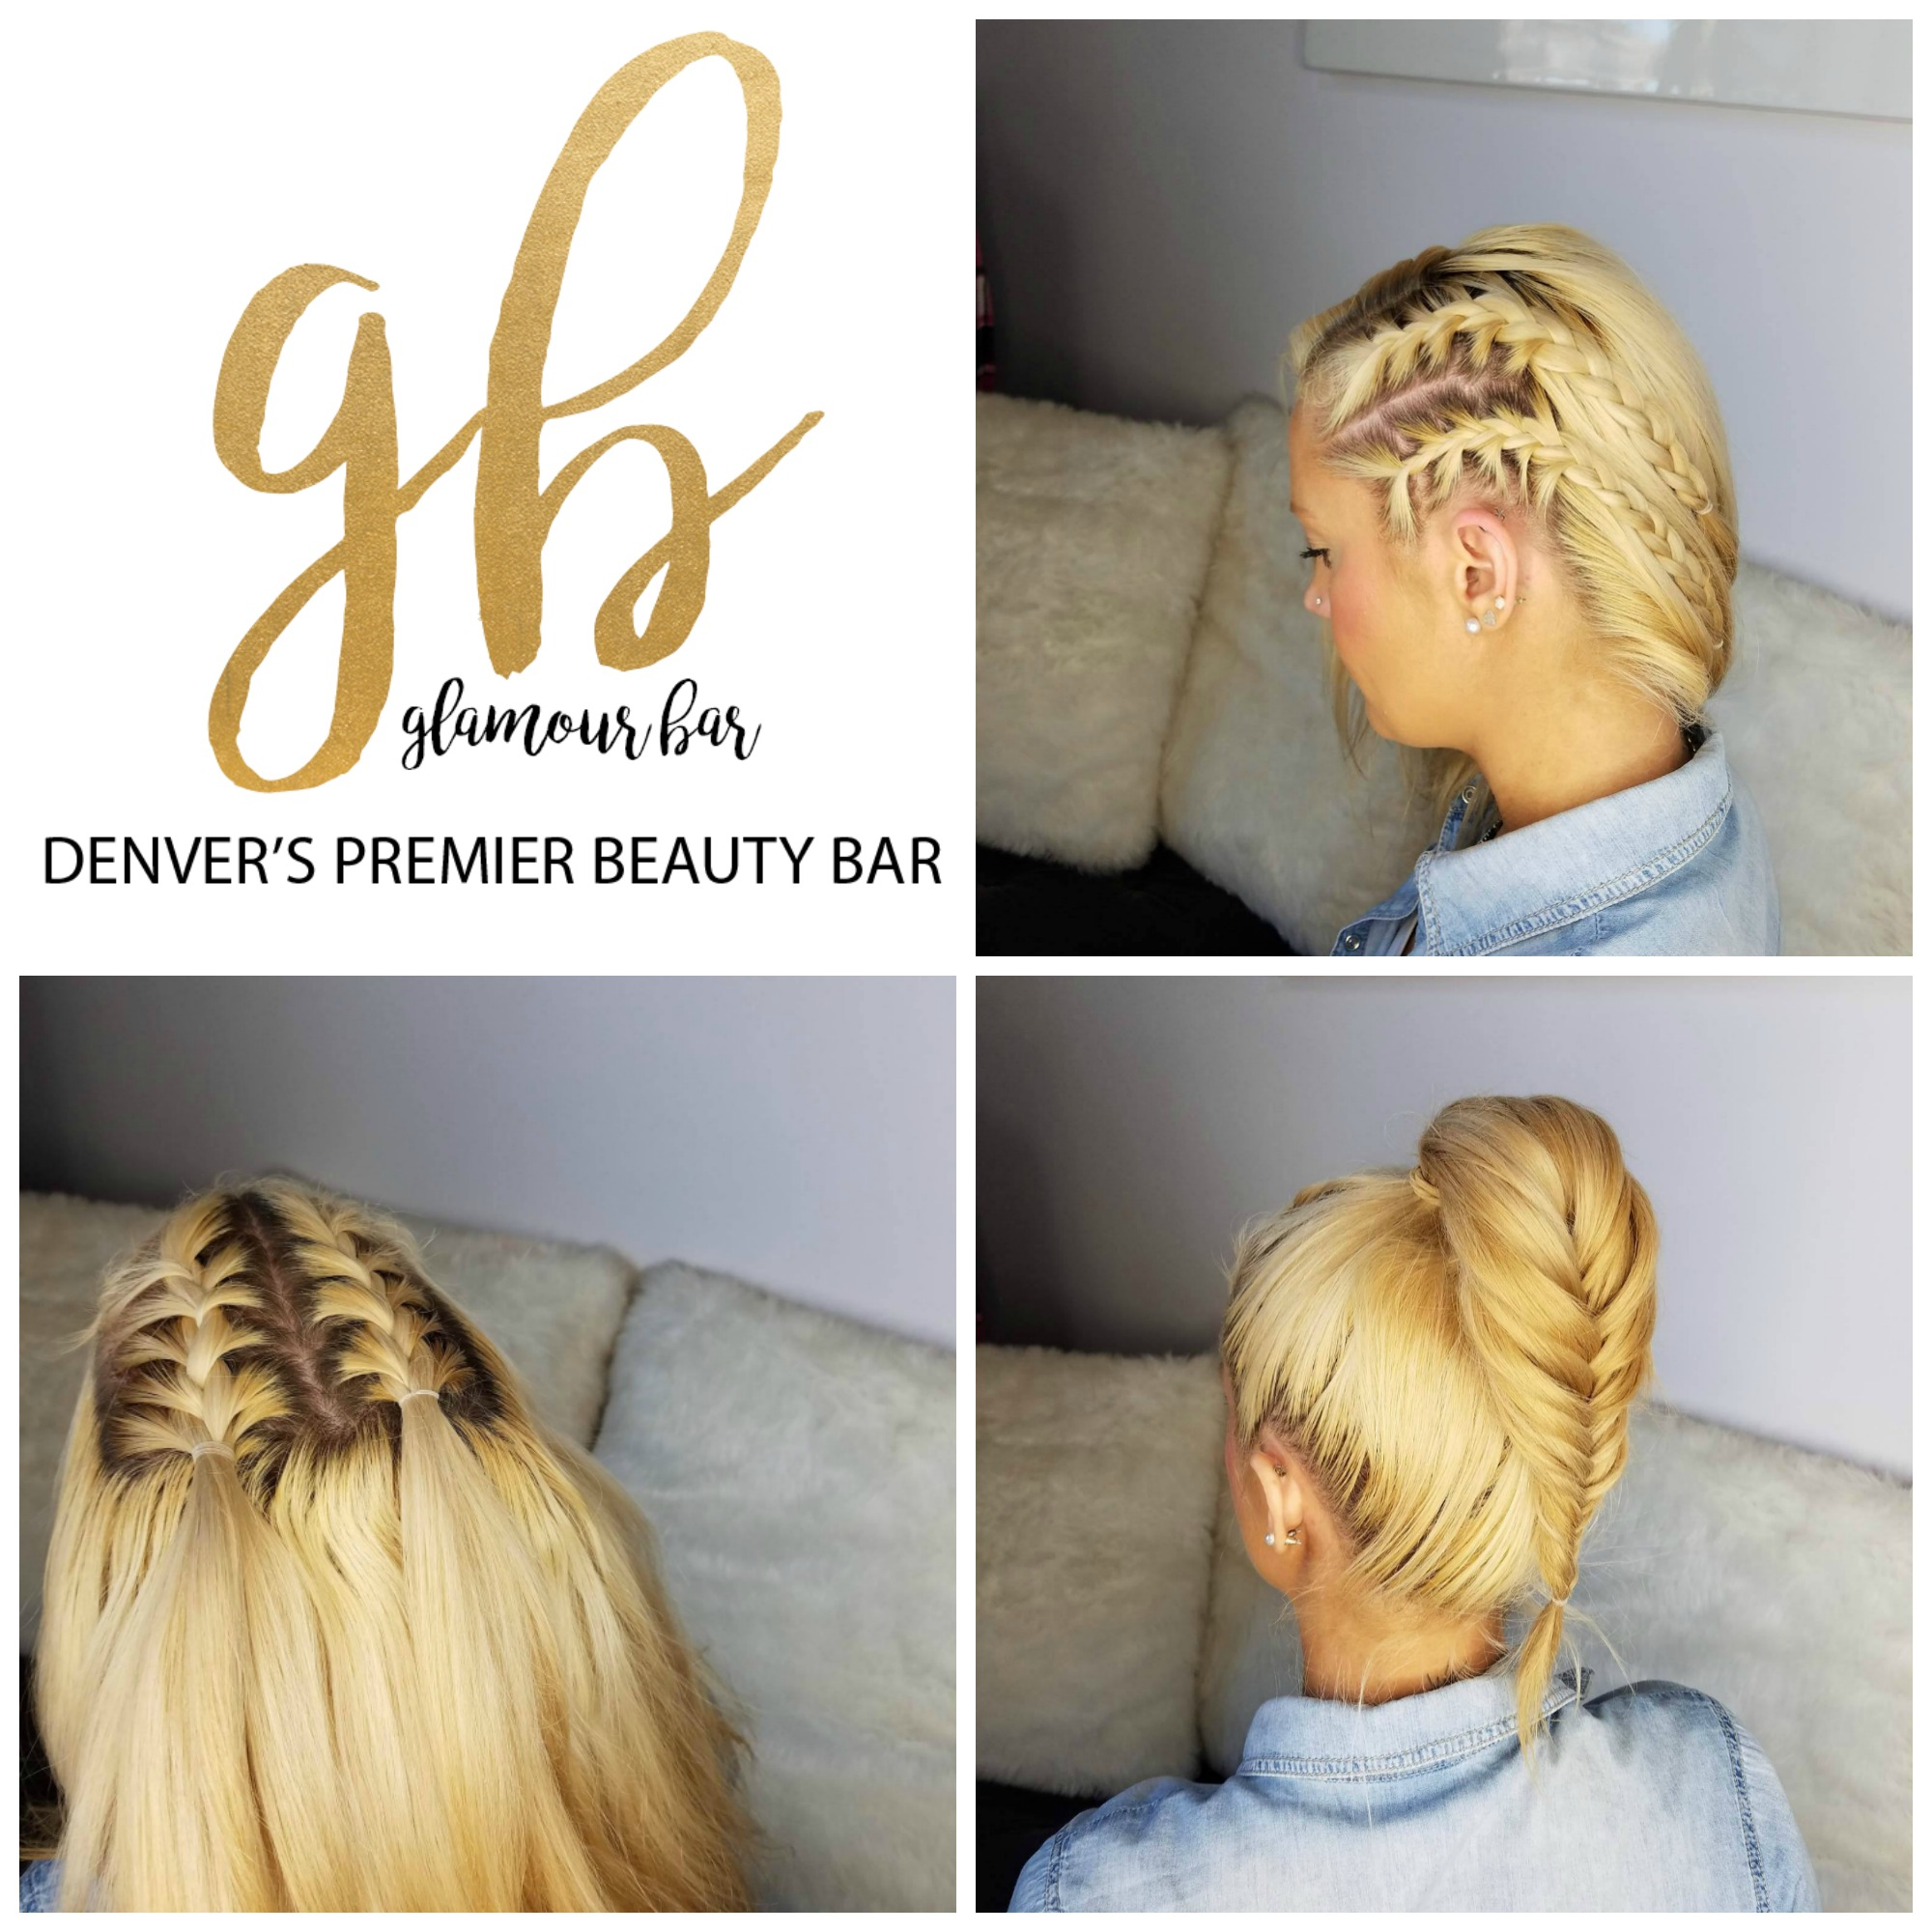 bRUNch n' braids  bRUNch is excited to announce that  Glamour Bar Denver  will be hosting a pop-up braid bar at the 5th Annual bRUNch Run! Sip on a mimosa and get your braided for $10-$15 (based on style and difficulty of braid).  Look good before your run, during your run, or after your run!   #bRUNchnbraids